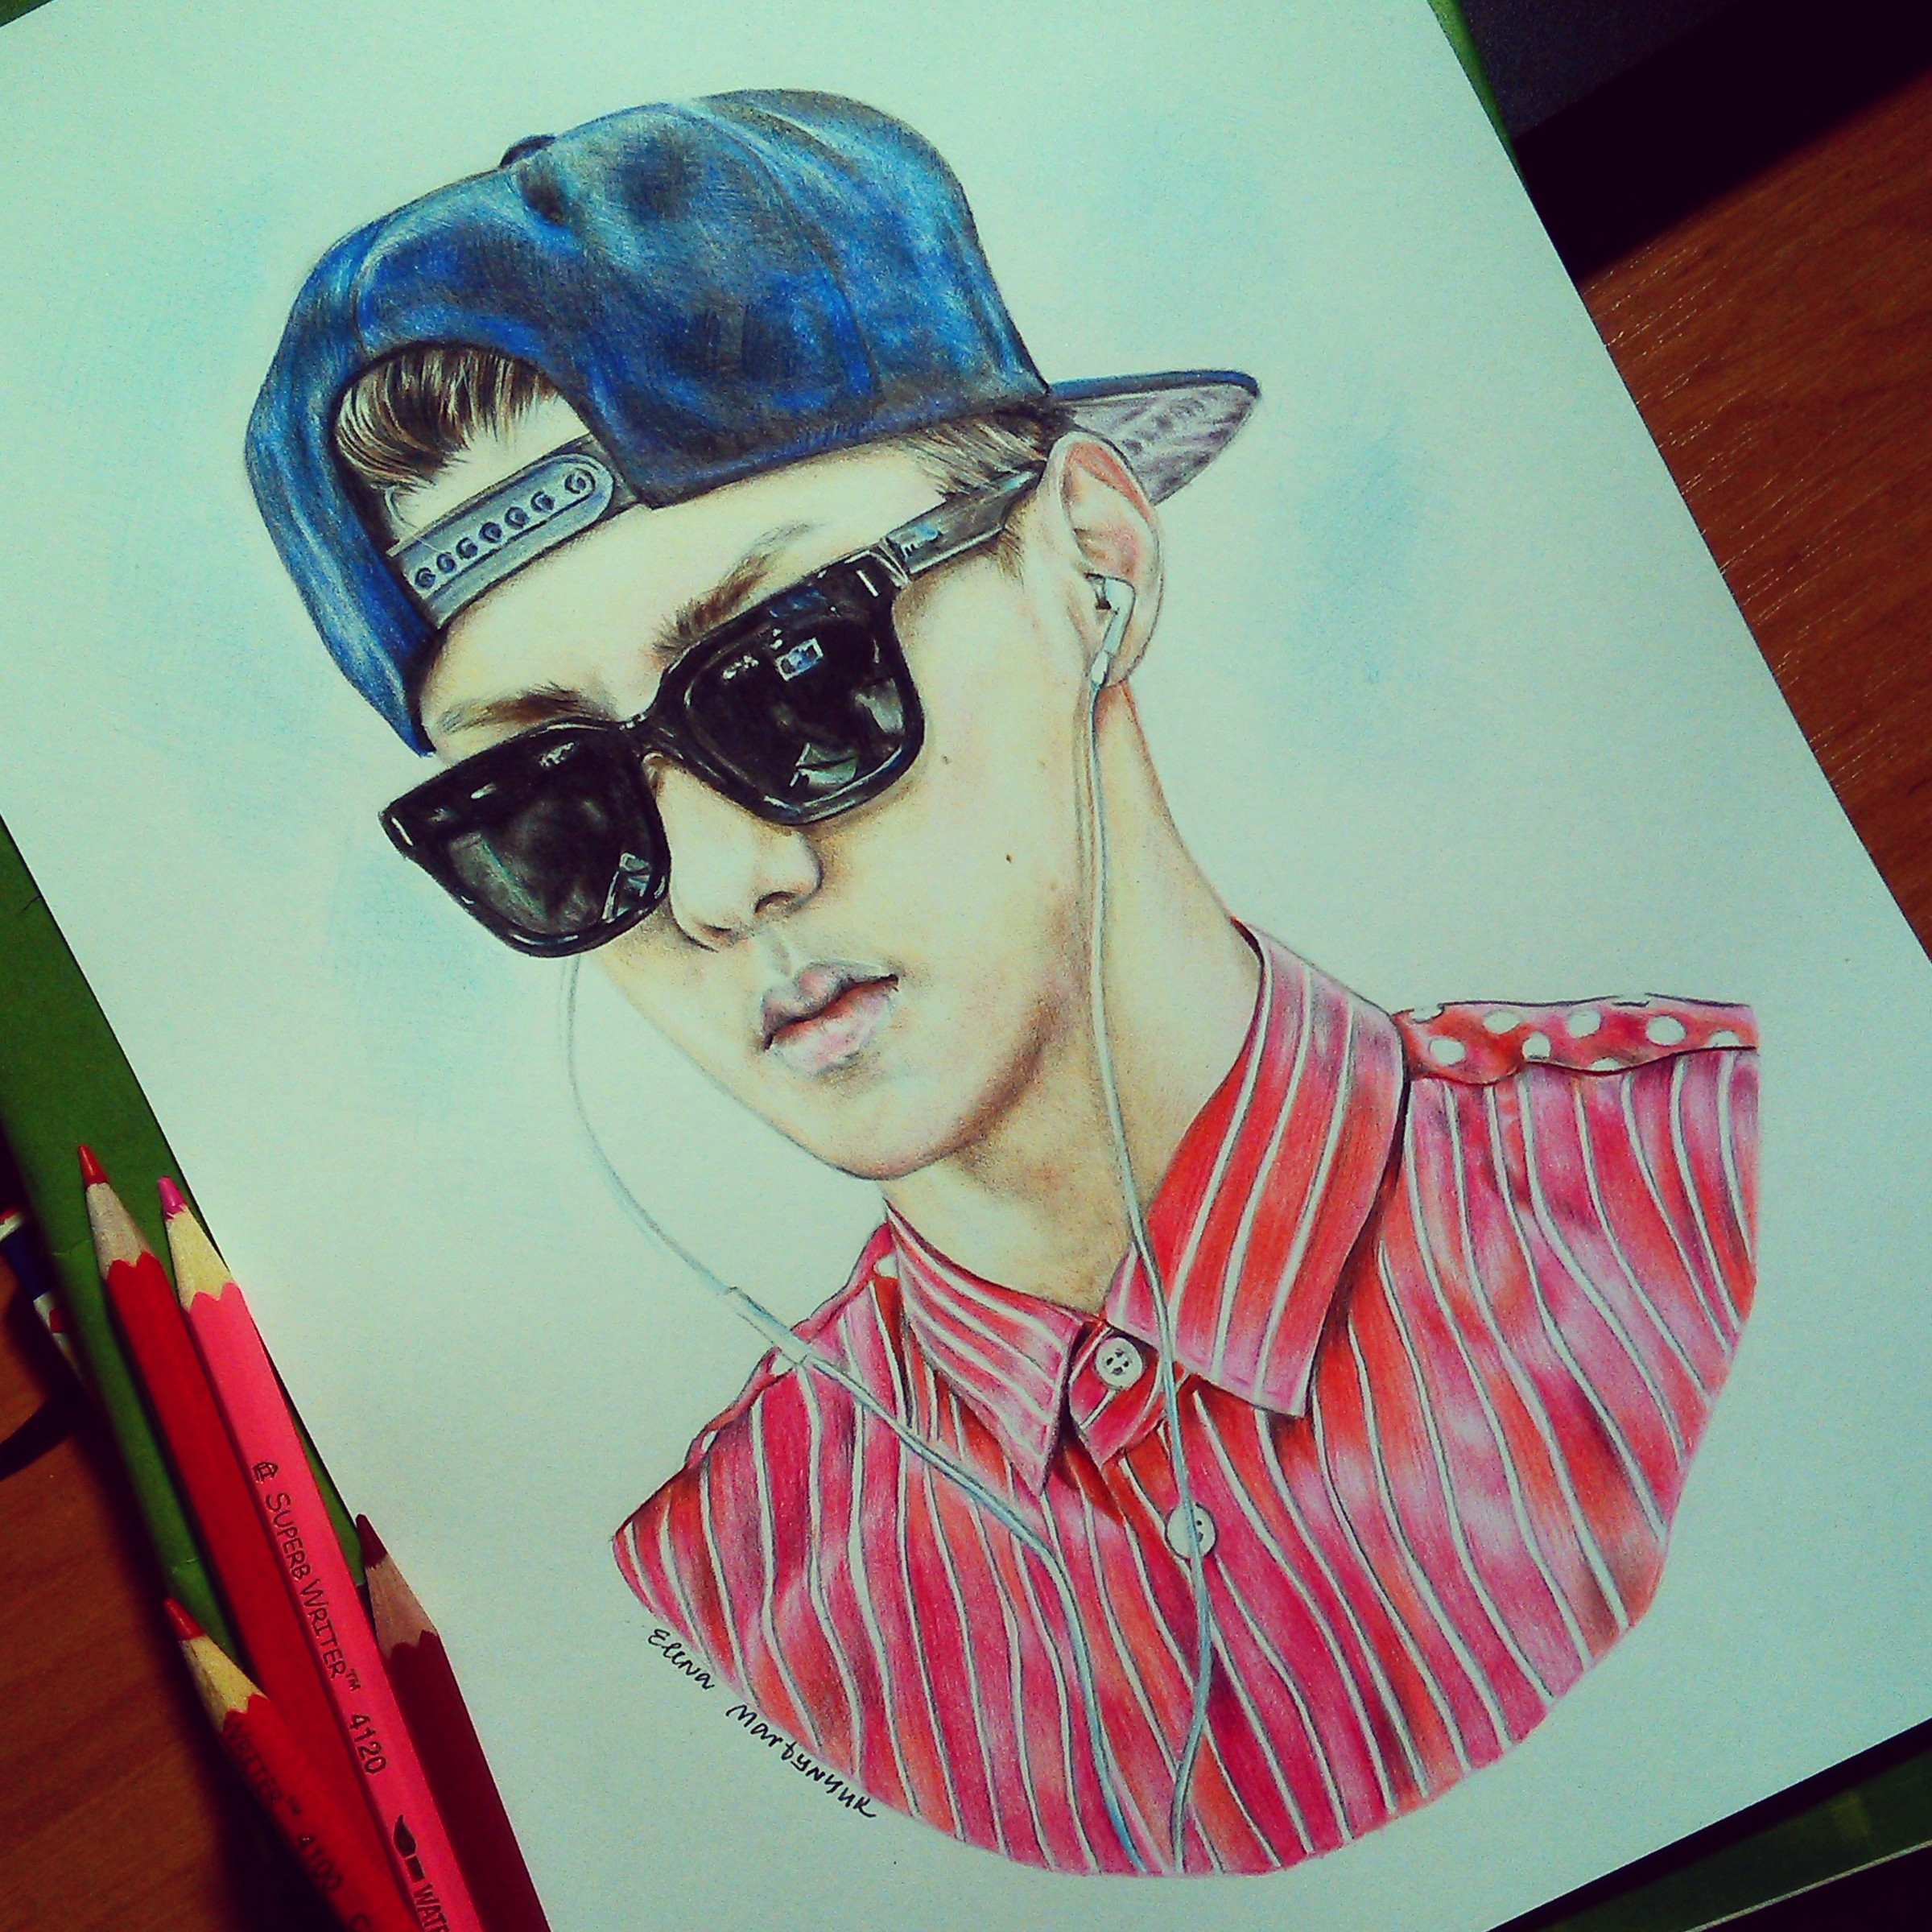 Kpop fan art images galleries with a for Fan art tumblr